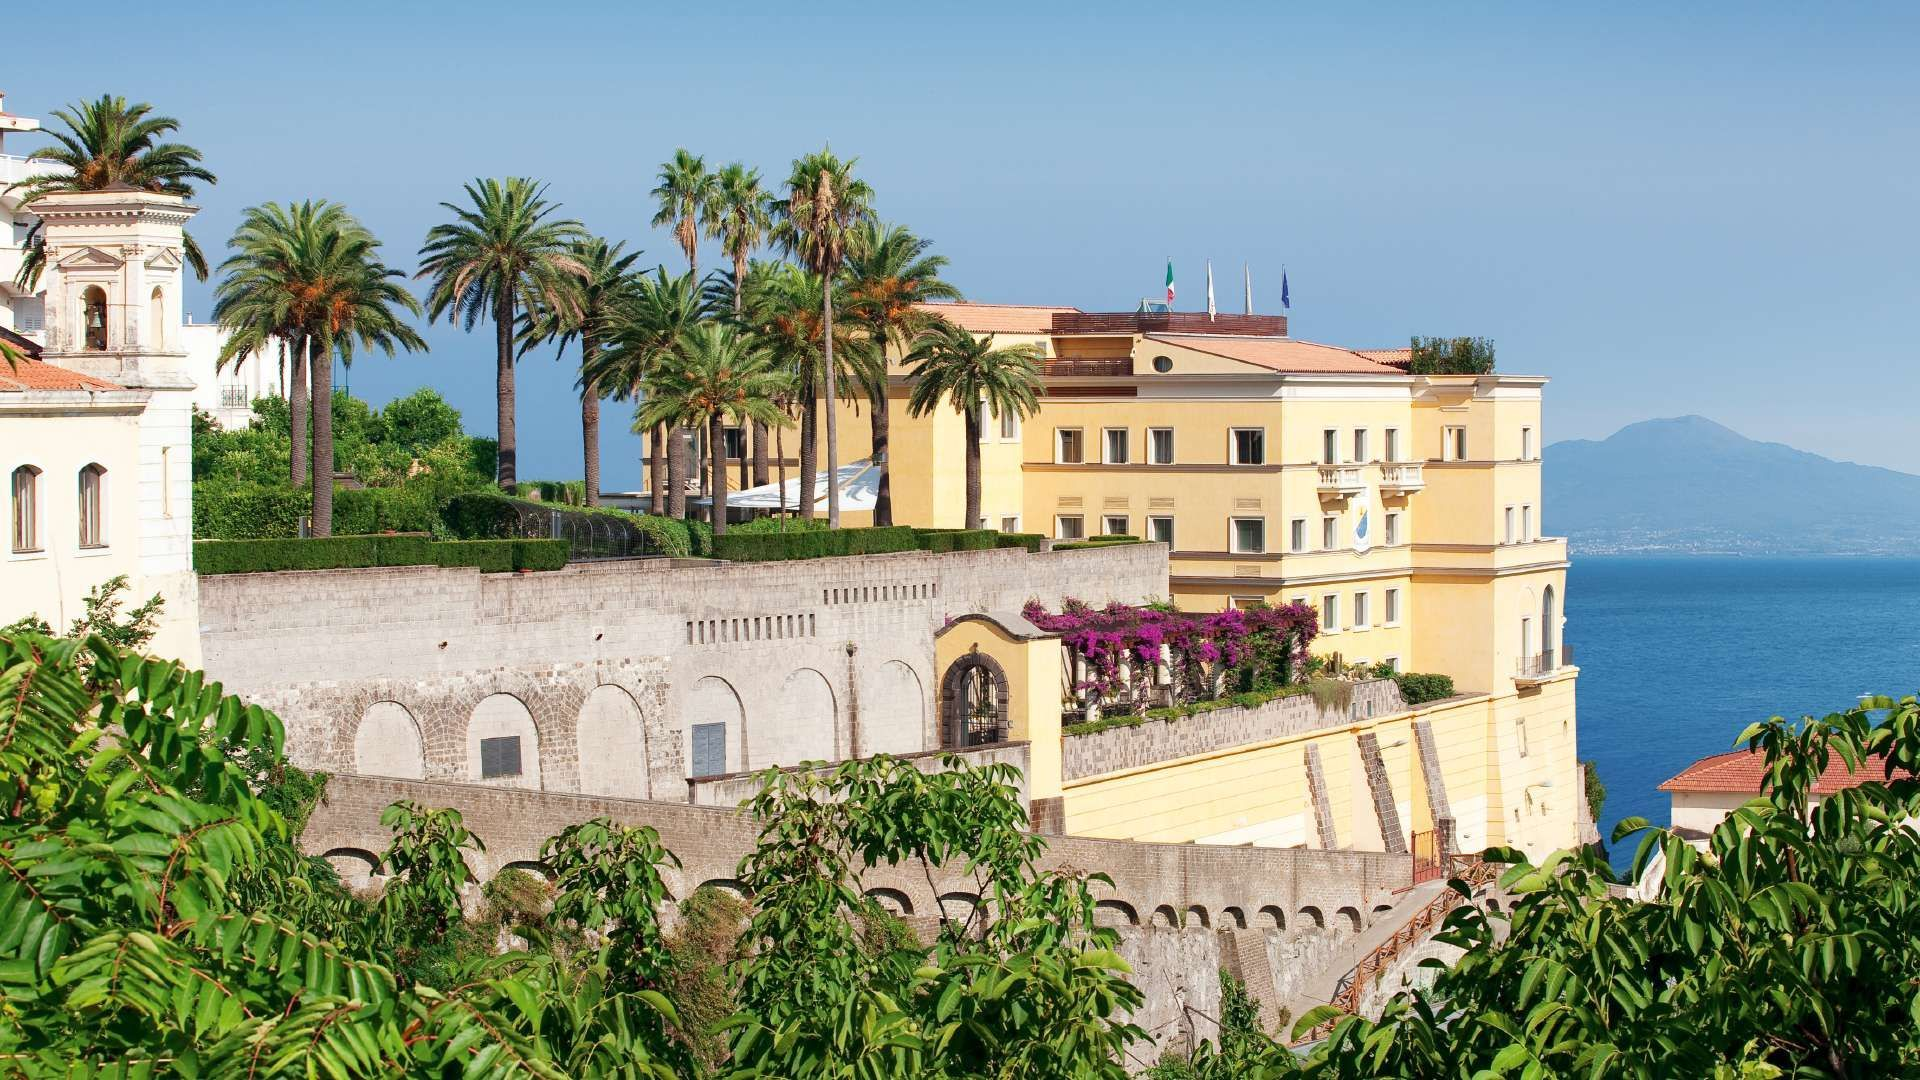 Sorrento Hotels 5 star Italy, best boutique luxury Hotels near Sorrento  Italy, Hotels in Seiano, Vico Equense in So… | Grand hotel, Sorrento hotel,  Beautiful hotels